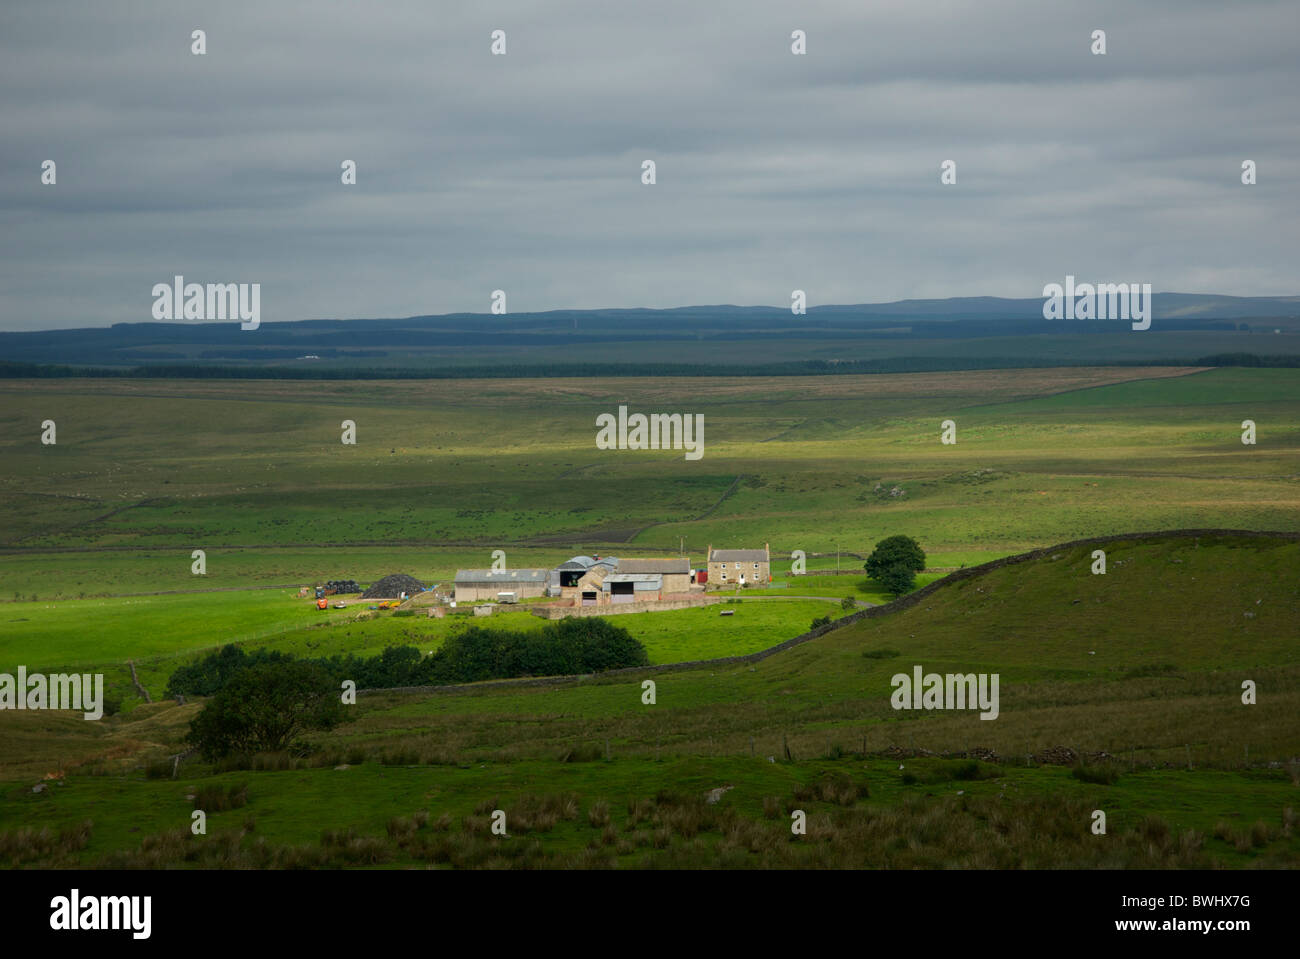 Farm near Greenhead, Cumbria, England, UK, from the viewpoint of Hadrian's Wall. - Stock Image